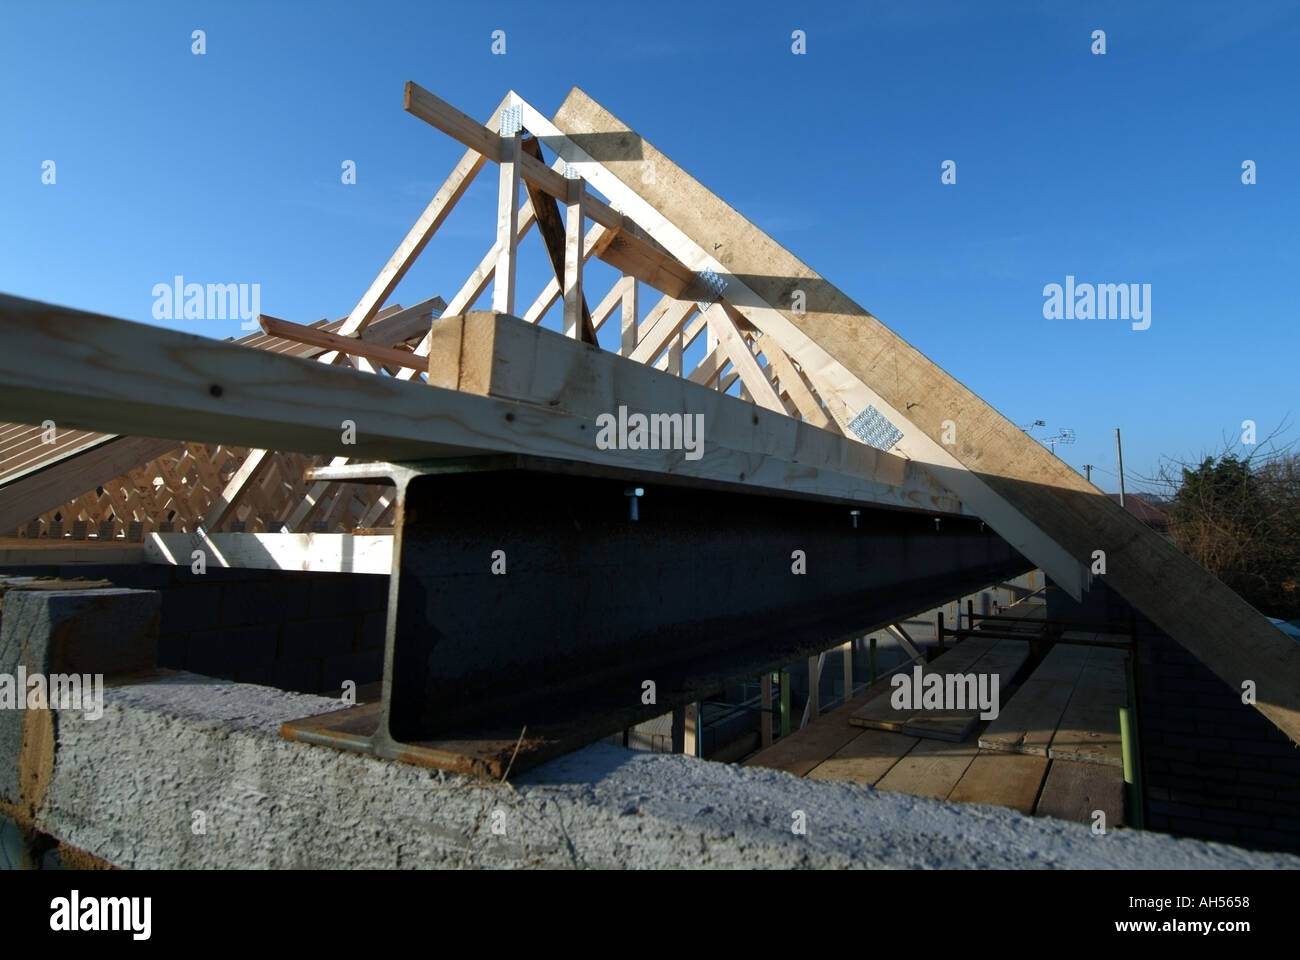 Detached House Work In Progress Assembling Prefabricated Roof